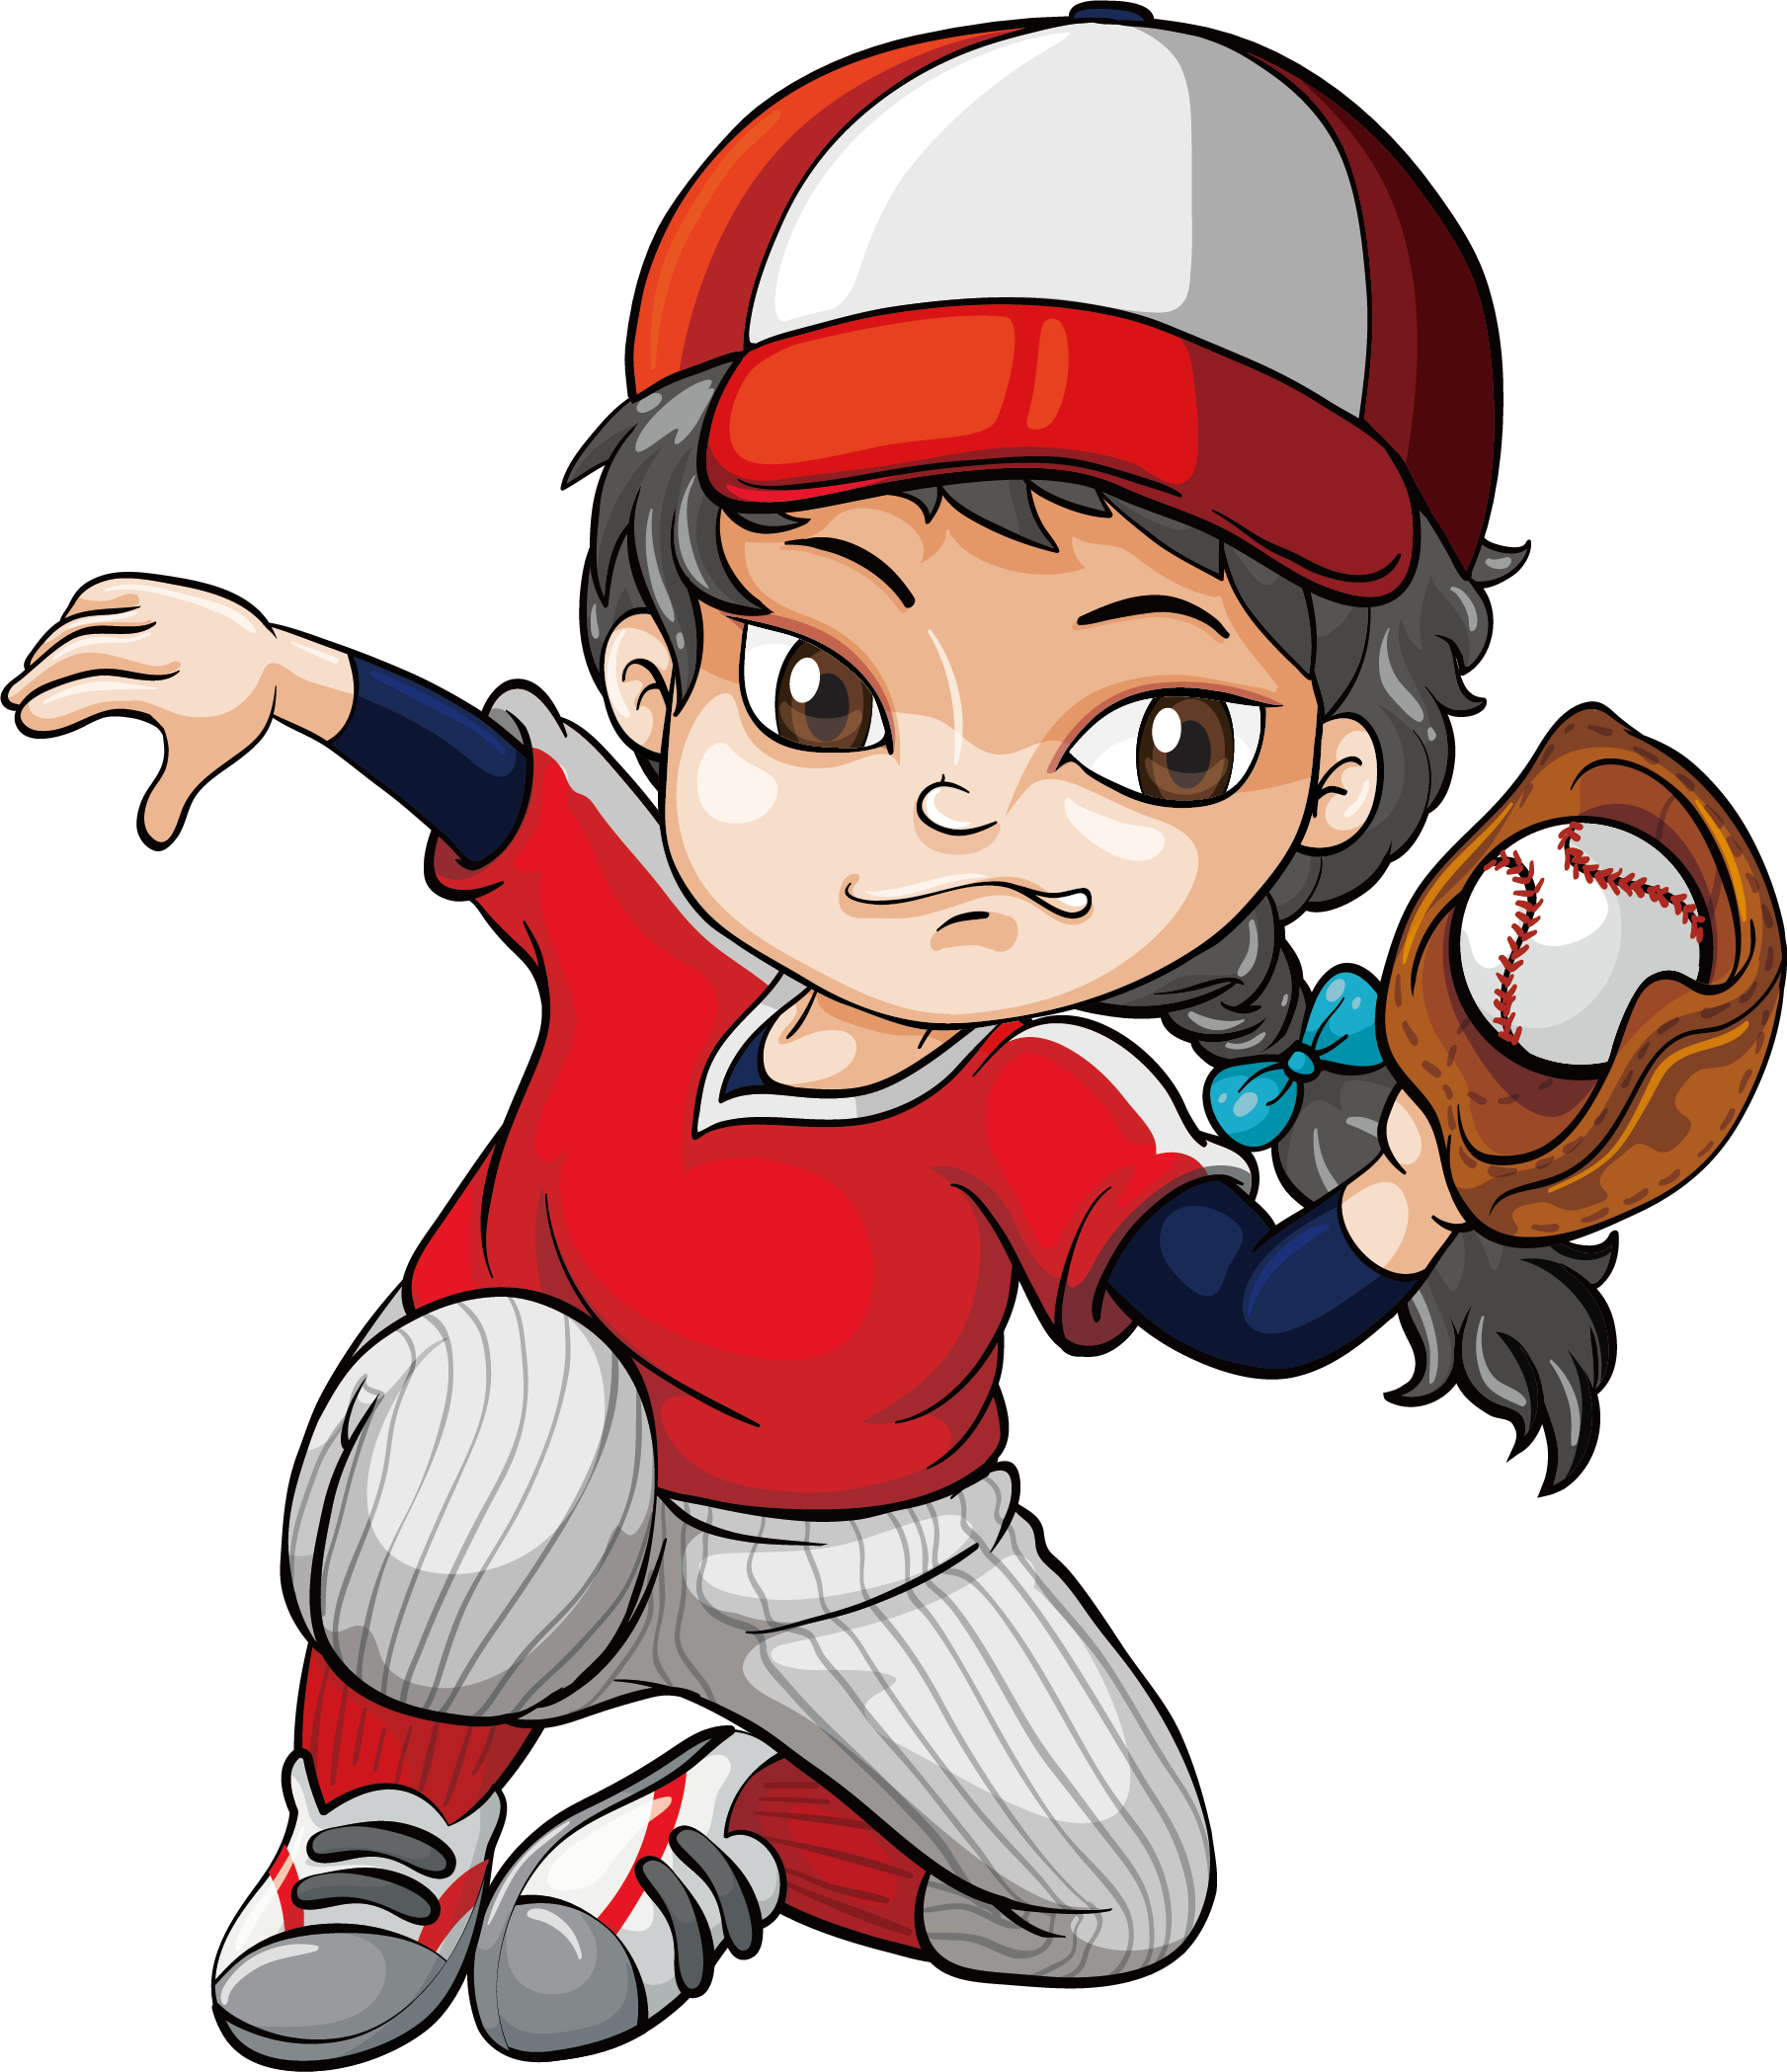 Kids baseball clipart vector royalty free download Baseball Batting Pitcher Clip art - Baseball catch 1809*2098 ... vector royalty free download